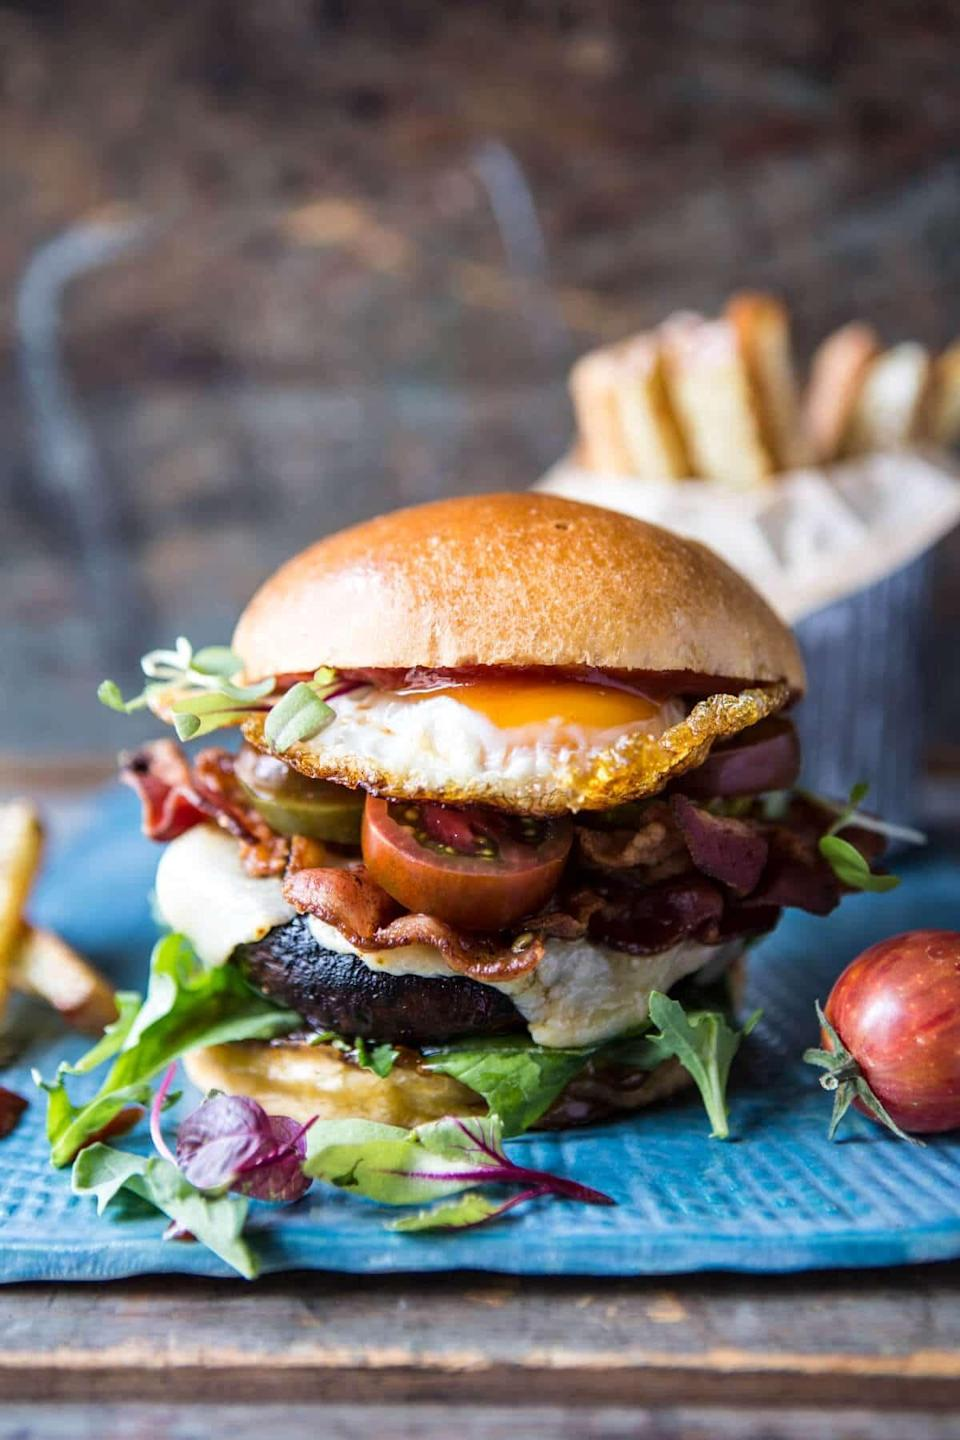 "<p>Adding bacon to a mushroom burger is one of the tastiest things you can do - trust us! You'll get the juicy meat mixed with the rich mushroom flavor to create a melt-in-your-mouth meal.</p> <p><strong>Get the recipe</strong>: <a href=""https://www.halfbakedharvest.com/cheddar-bacon-portobello-mushroom-burger/"" class=""link rapid-noclick-resp"" rel=""nofollow noopener"" target=""_blank"" data-ylk=""slk:cheddar bacon portobello mushroom burger"">cheddar bacon portobello mushroom burger</a></p>"